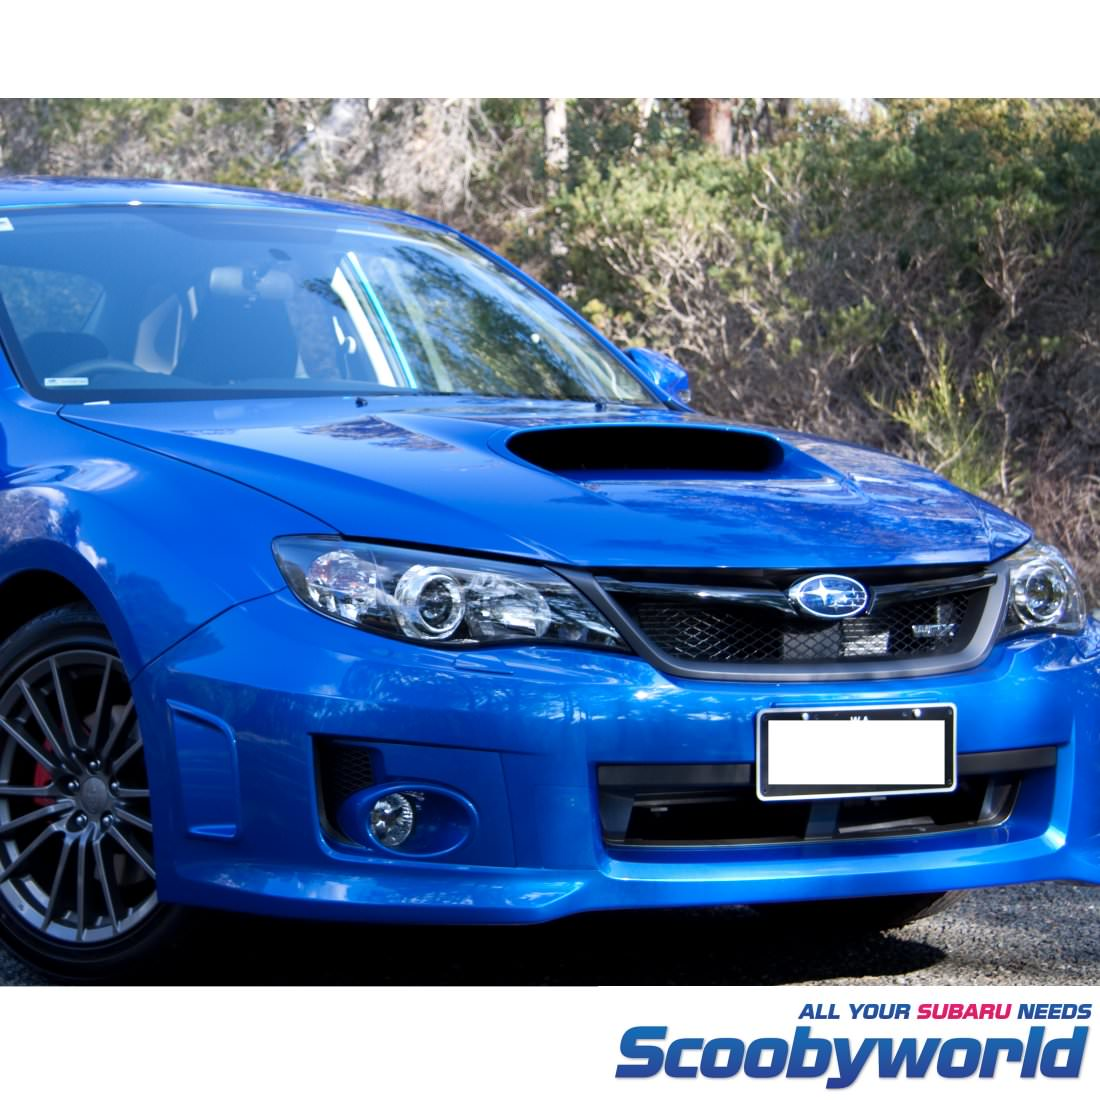 Scoobyworld genuine fog lamp cover subaru impreza 11 on wrxsti genuine fog lamp cover subaru impreza 11 on wrxsti passengers side publicscrutiny Gallery